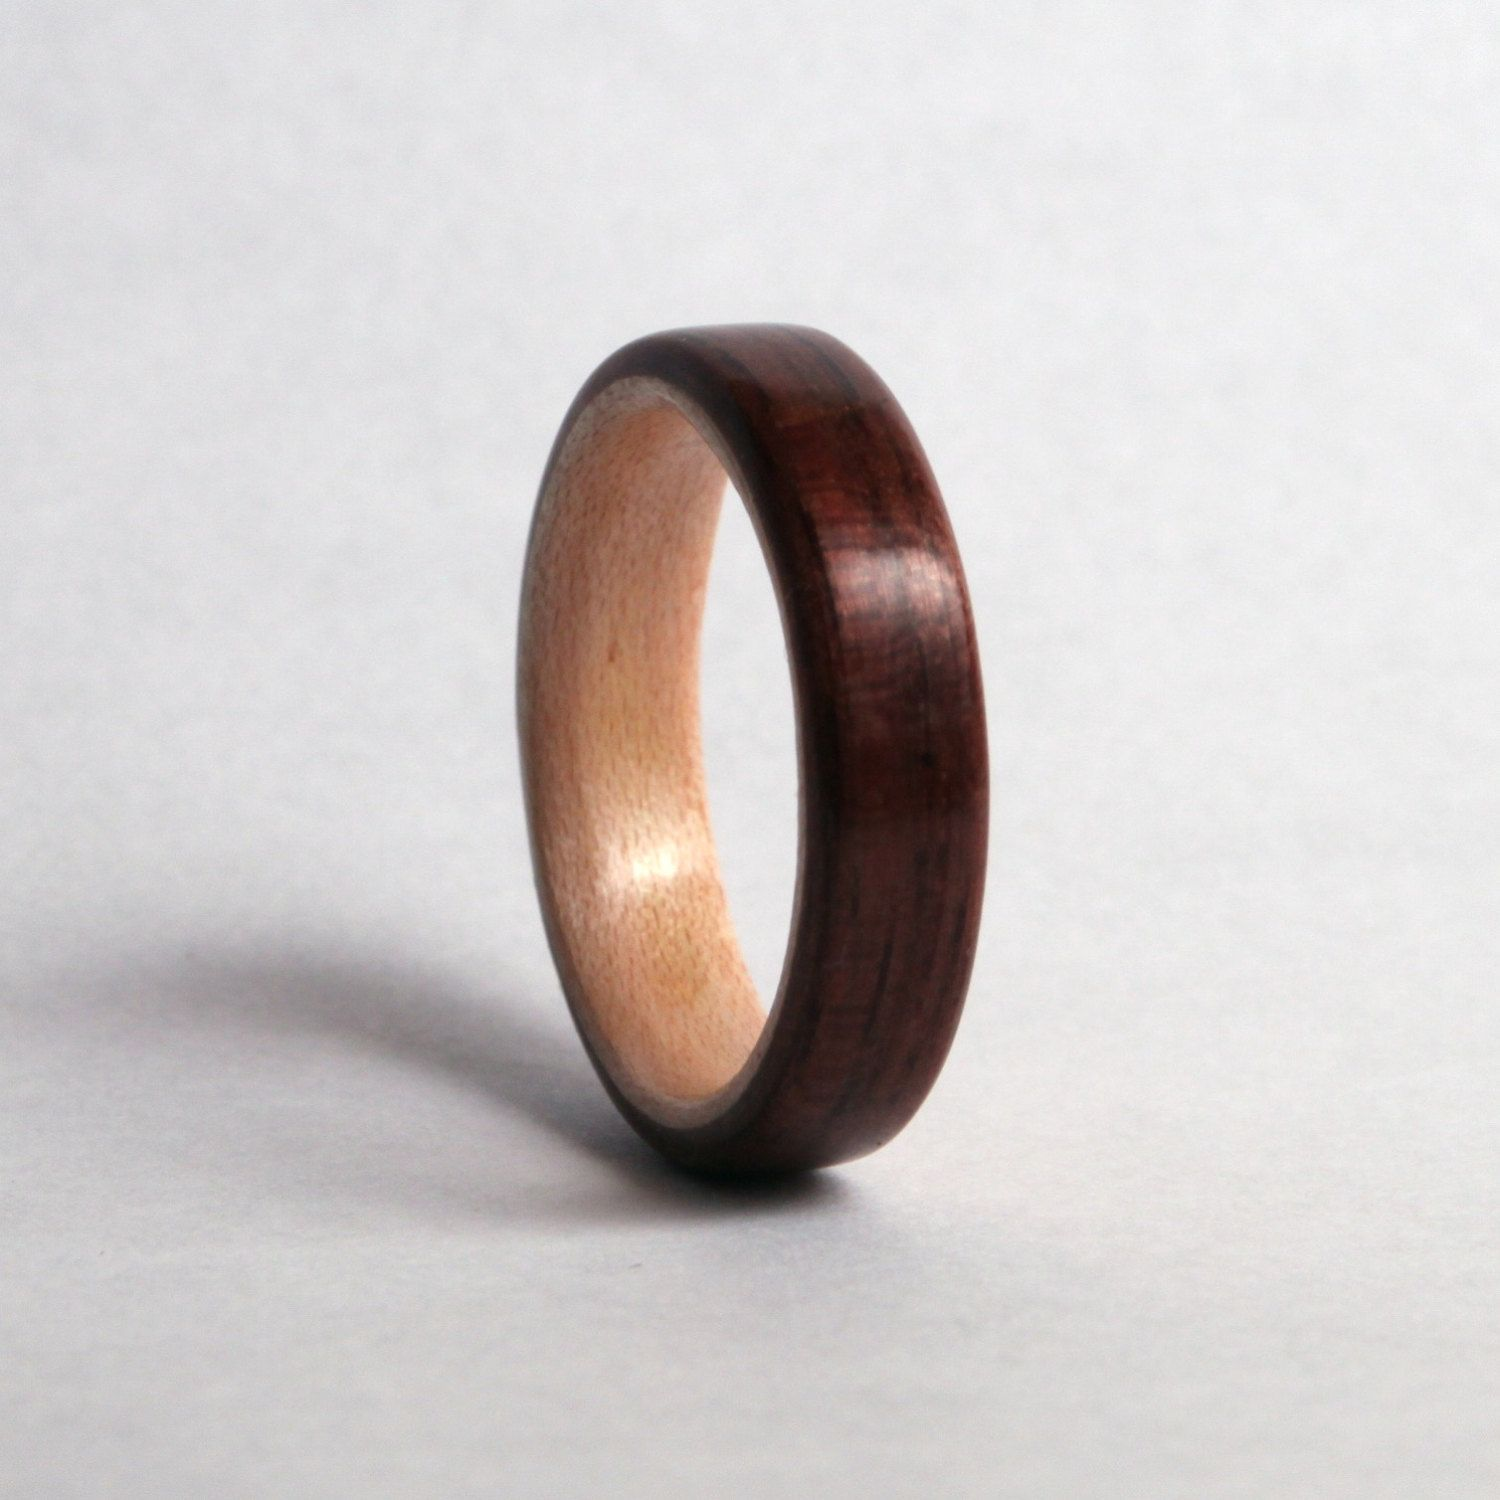 Black Walnut Wood Ring With Maple Liner Wooden Wedding Band: Walnut Wood Wedding Rings At Websimilar.org